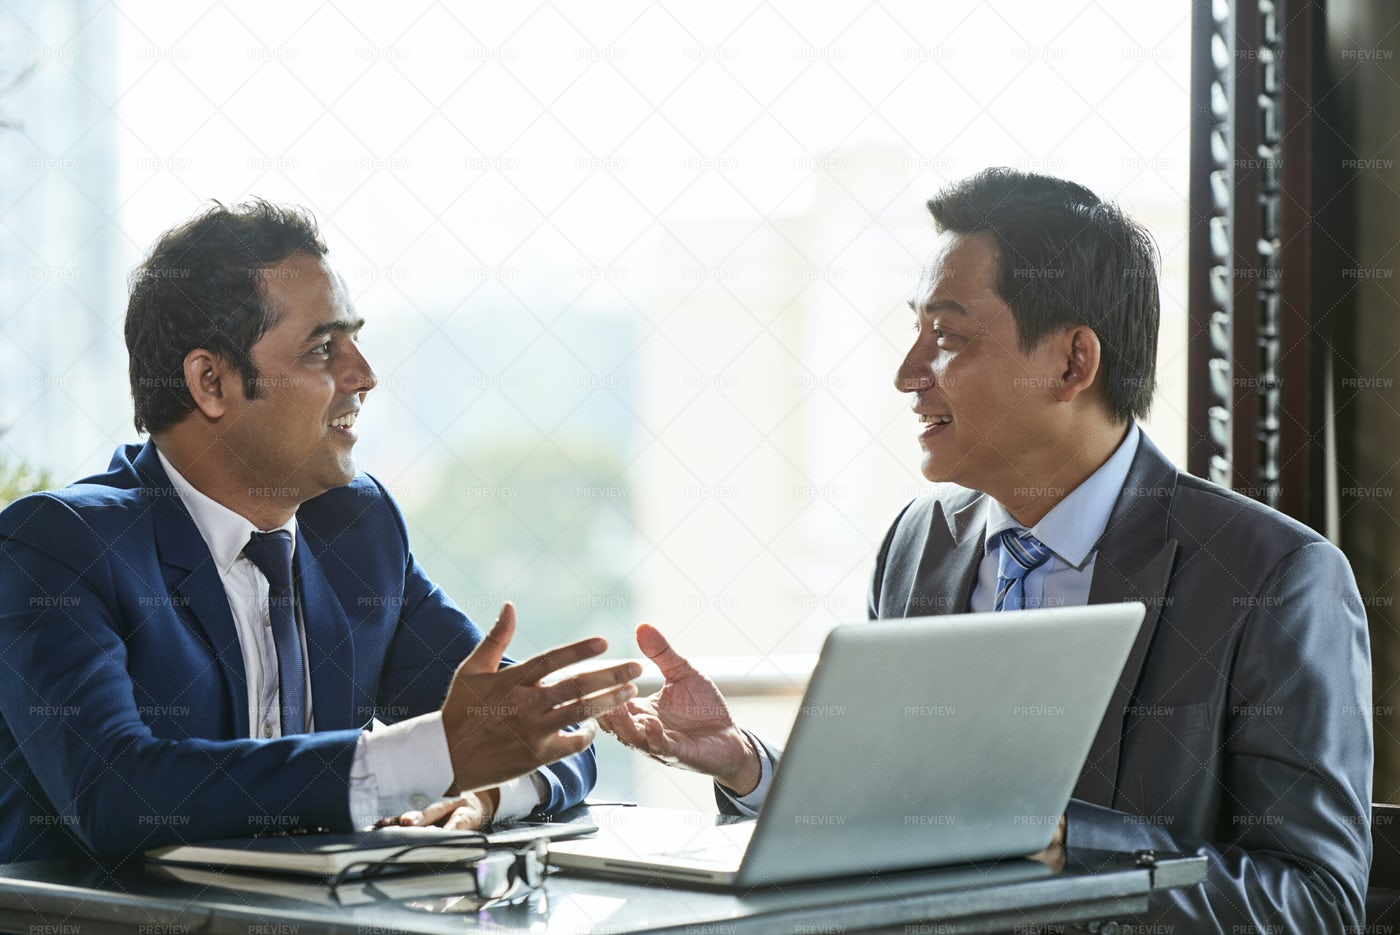 Business Leaders Planning Their: Stock Photos